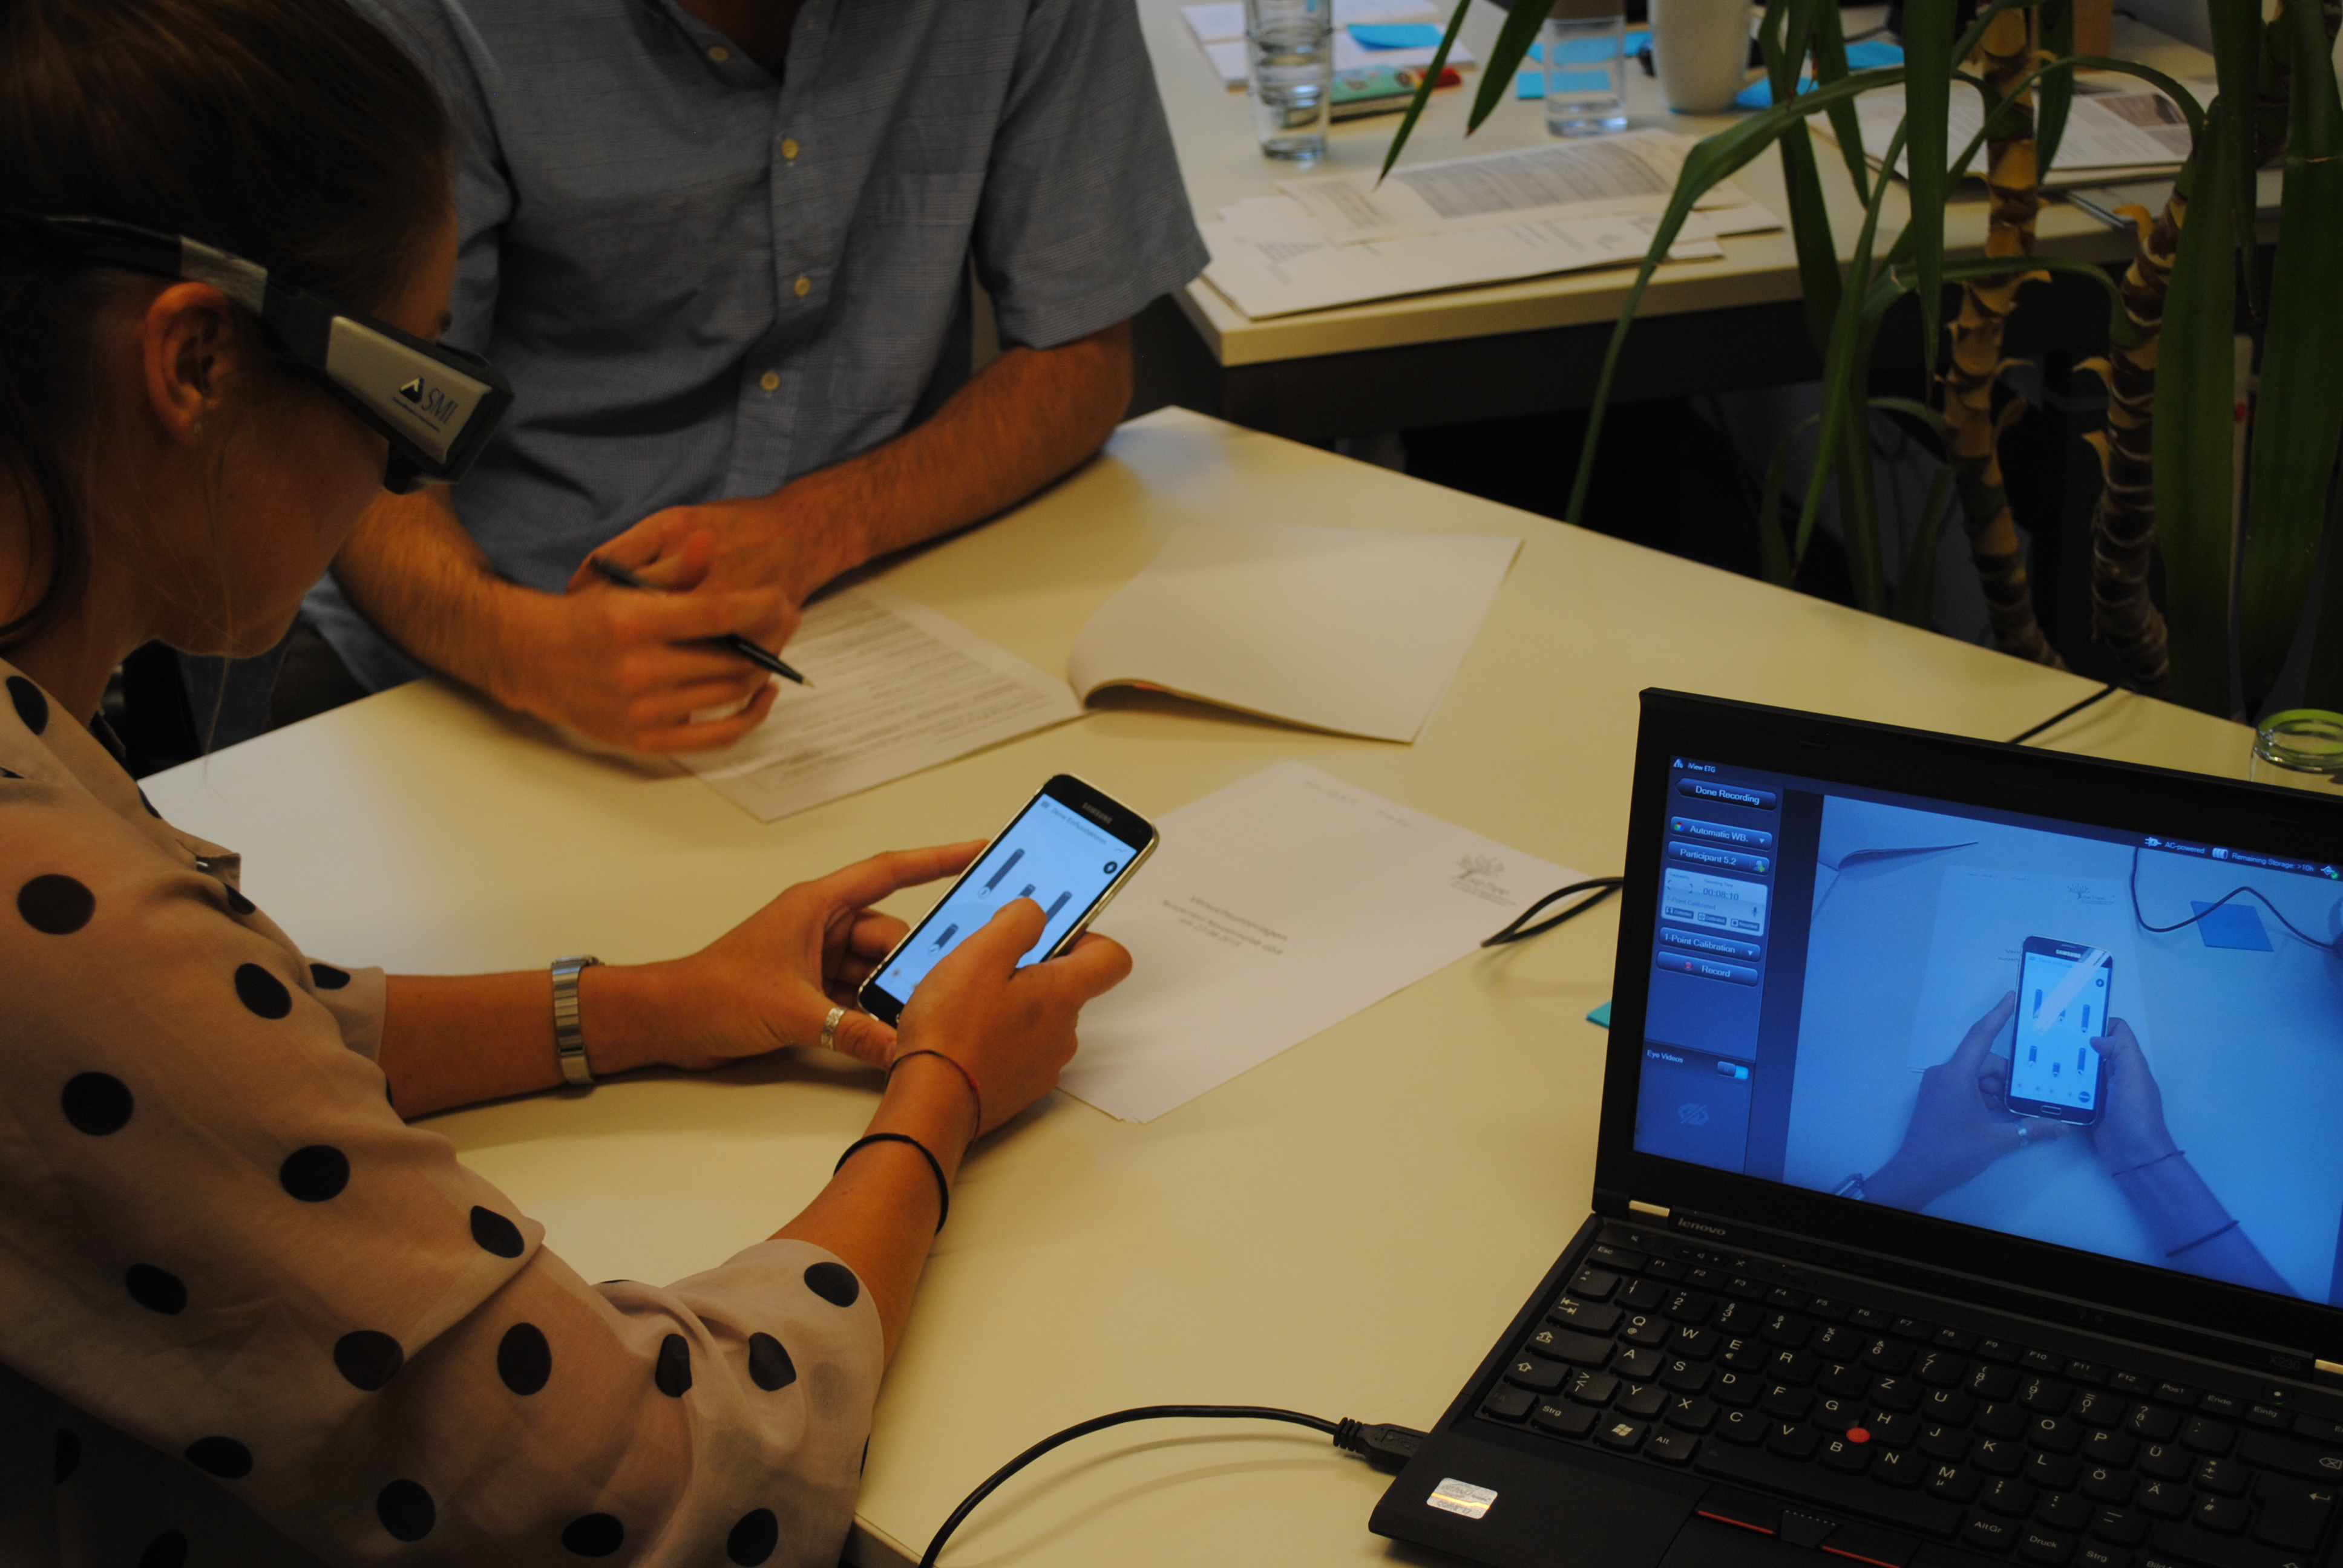 Usability-Test in Verbindung mit Eye Tracking.